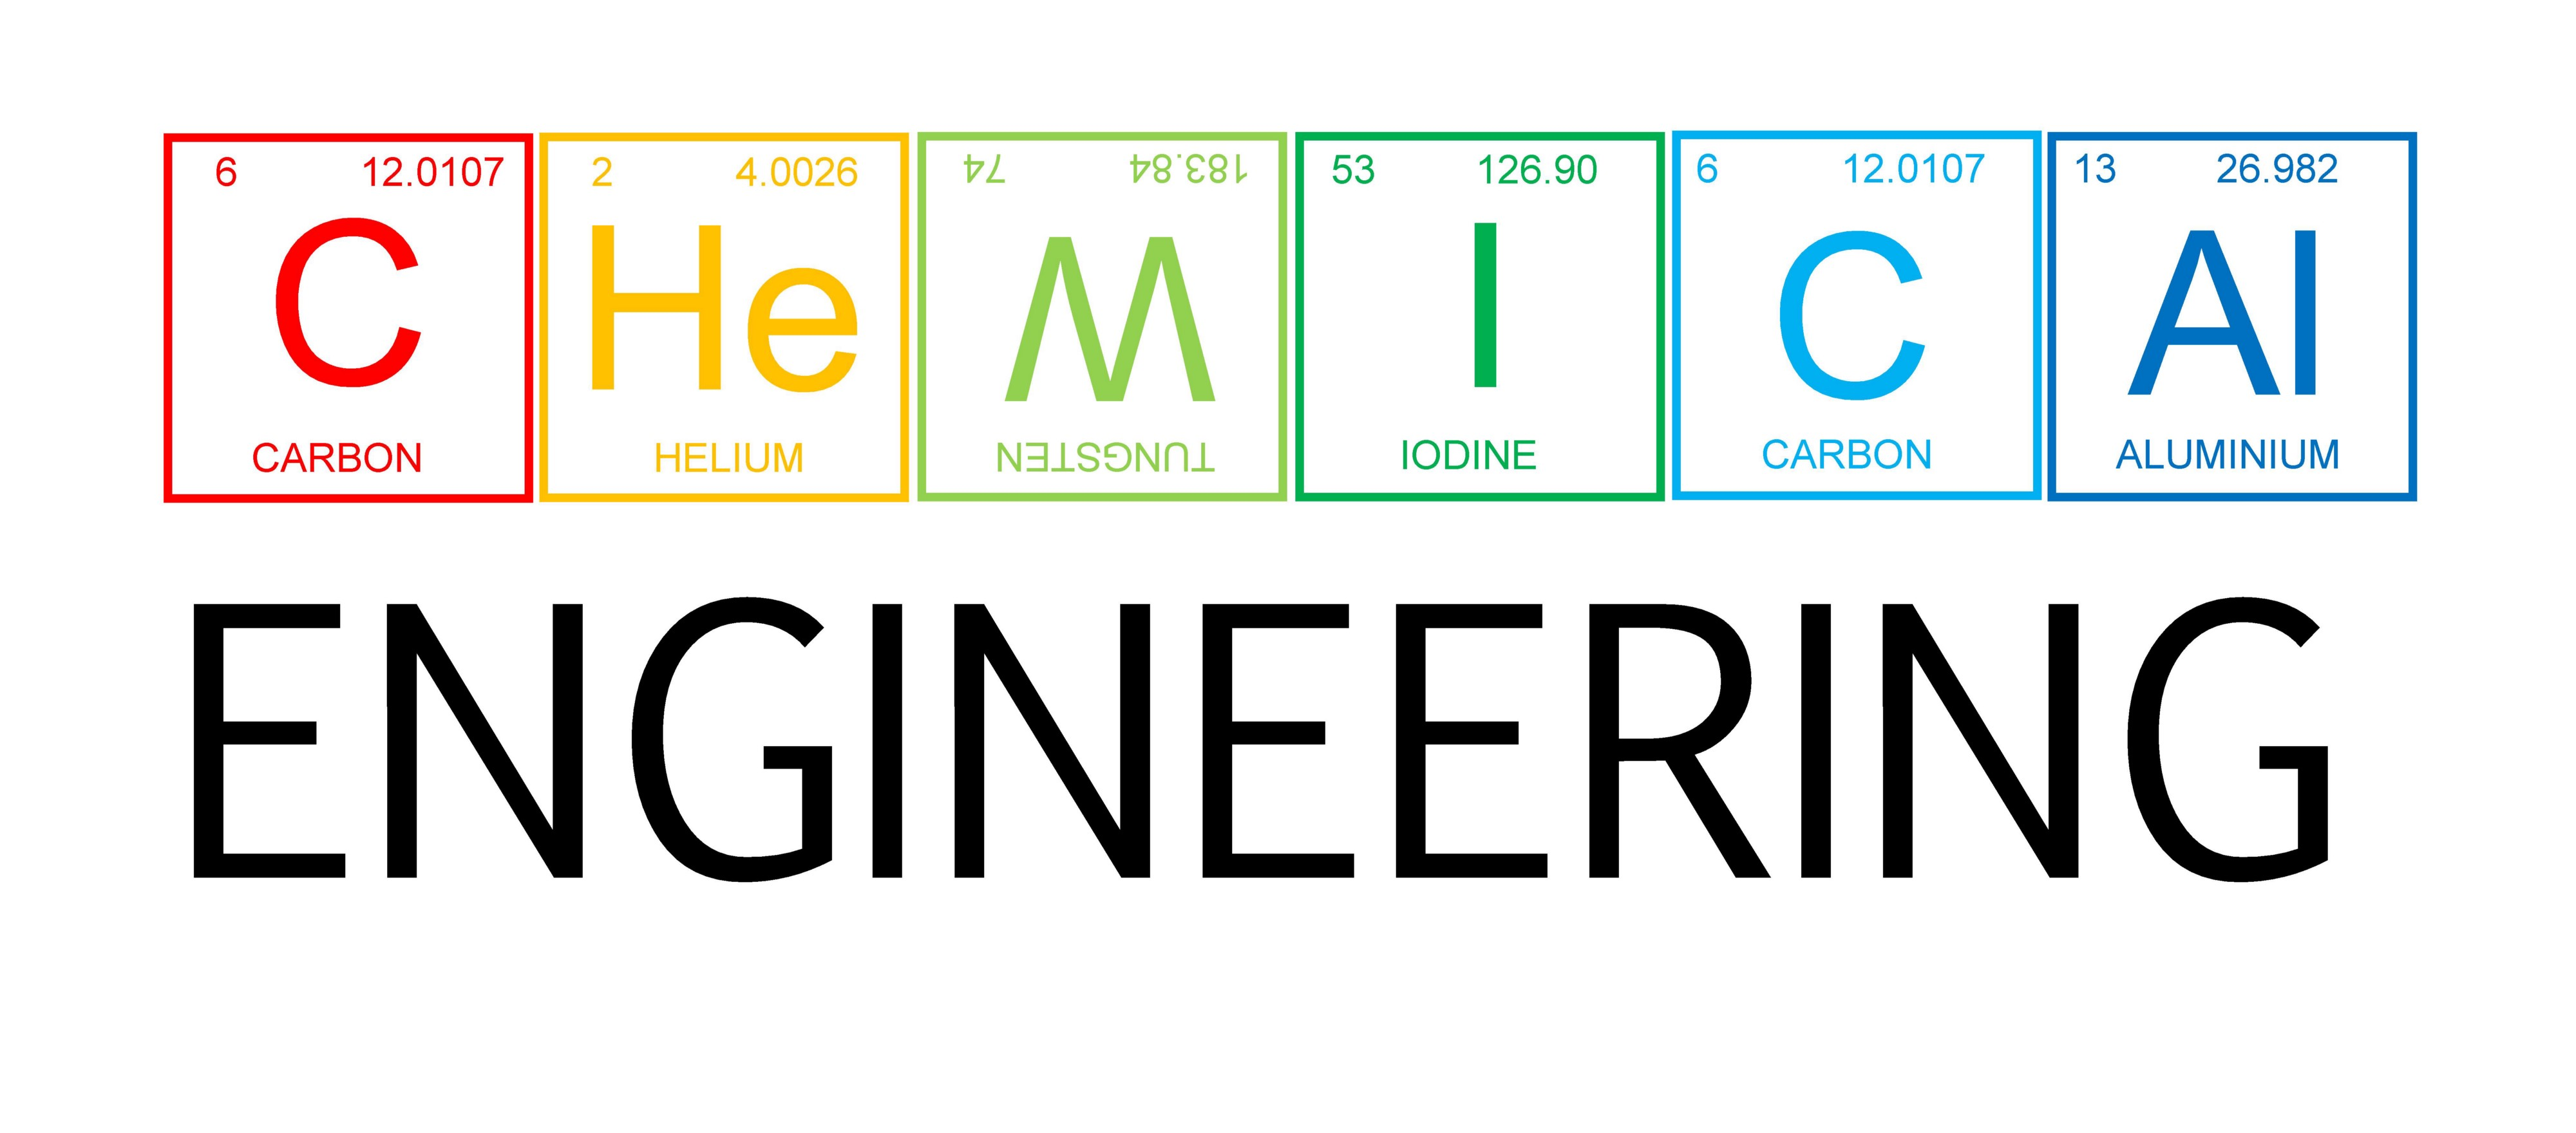 A chemical engineer can't code - Student Voices